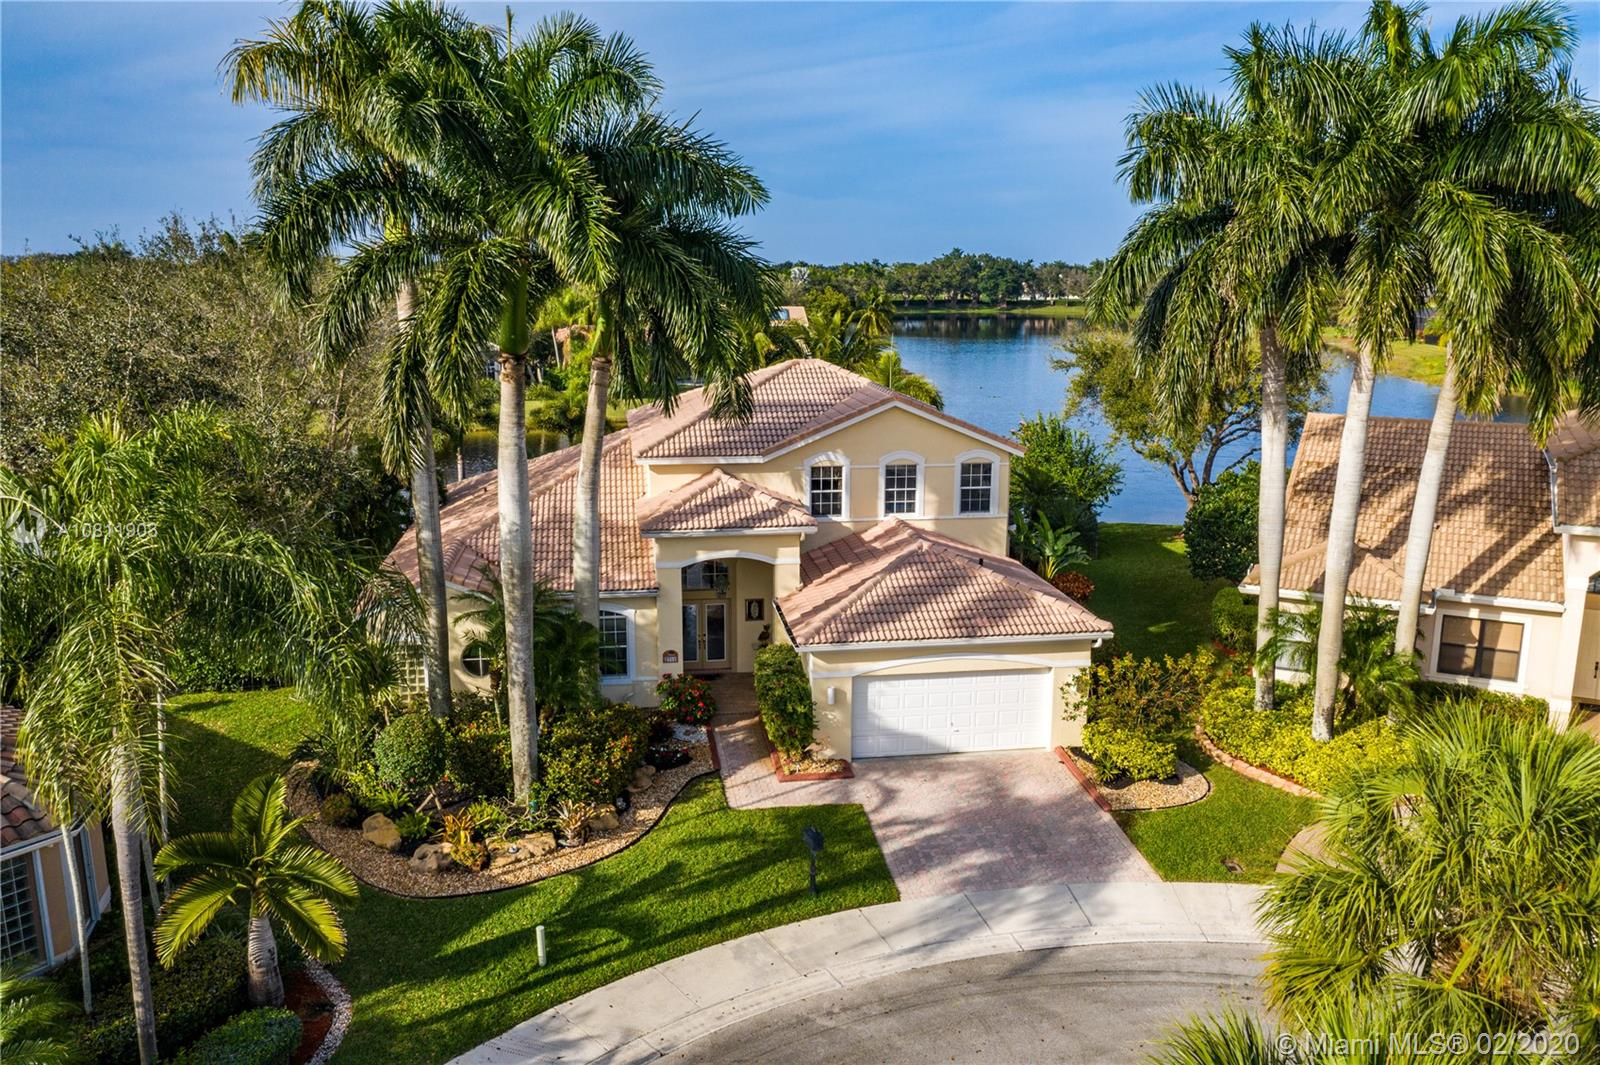 "Weston Hills C.C. 16,095 sf pie shaped cul-de-sac lot w/gorgeous lake views 5B/4B 3834 Sq ft home boasts a Lg extended paved patio custom pool waterfalls new led lights, hot tub fenced Perfect for Entertaining! Surround sound system! Grand Master Bedroom on 1st Fl w/3 Bed upstairs w/5th bedroom downstairs used as office/den w/custom closets/built-in Lg neutral diagonal Tile throughout, Carpet in Bedrooms. Spacious, Huge dine in Gourmet Kitchen w Granite/New Appliances/extra tall cabinetry/wine cooler/Lg island & Bar/Built in Elec. Sweeper/Vacuum System Formal Dining & Living Room WHCC an exclusive family-oriented community in City of Weston w/2 pristine 18-hole championship golf courses, known as Weston Hills Golf and Country Club. ""A"" rated schools and easy access to the hwy. AC's 5 yrs"